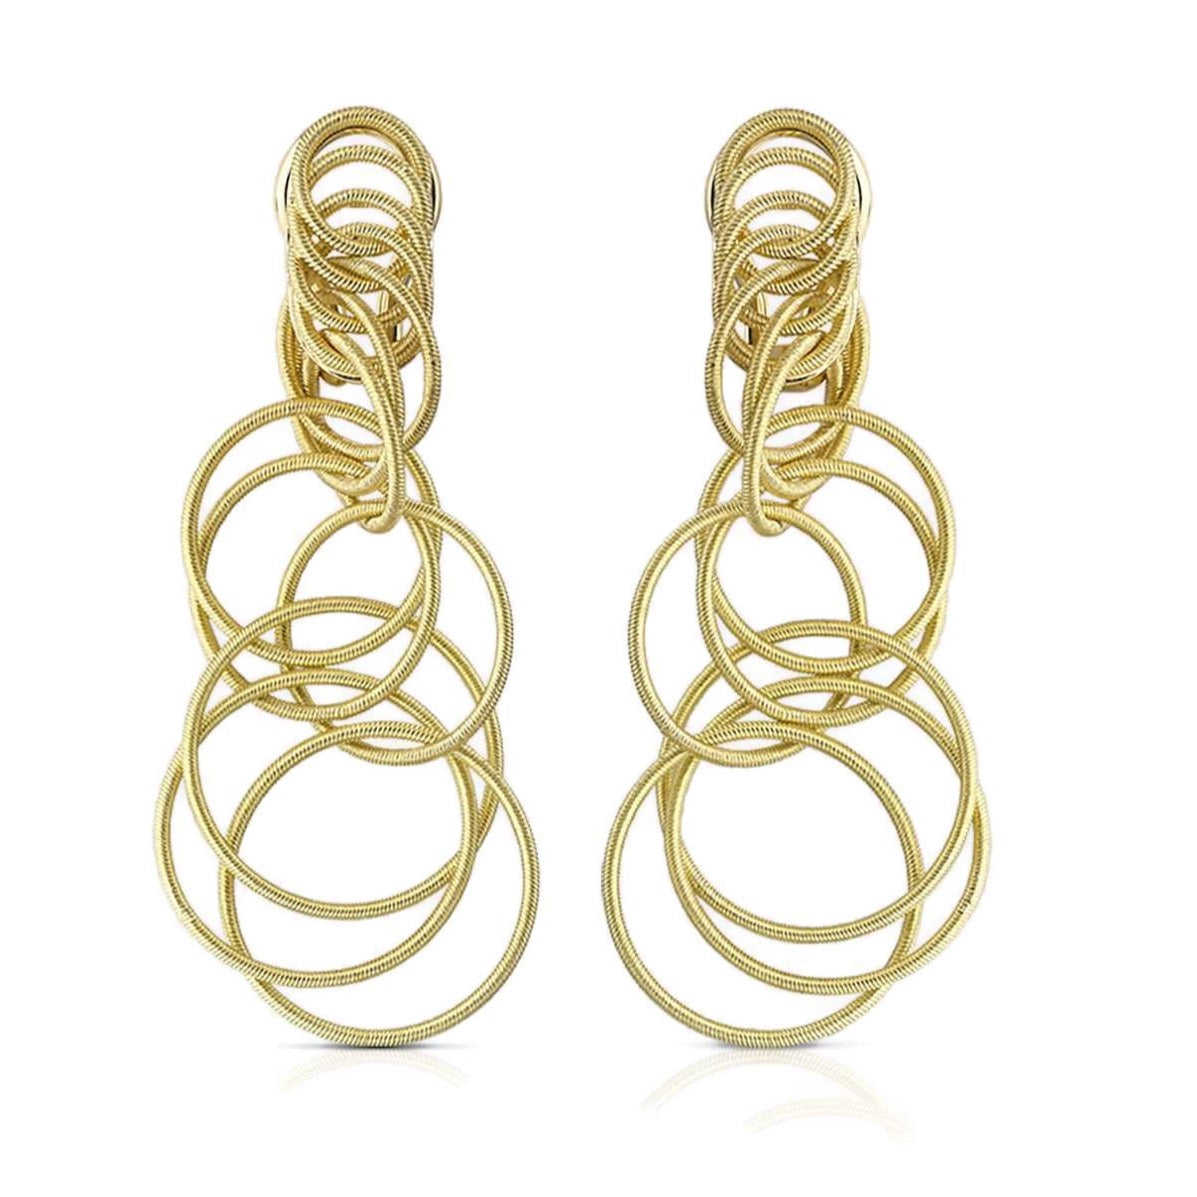 BUCCELLATI-HAWAII-EARRINGS-YELLOW-GOLD